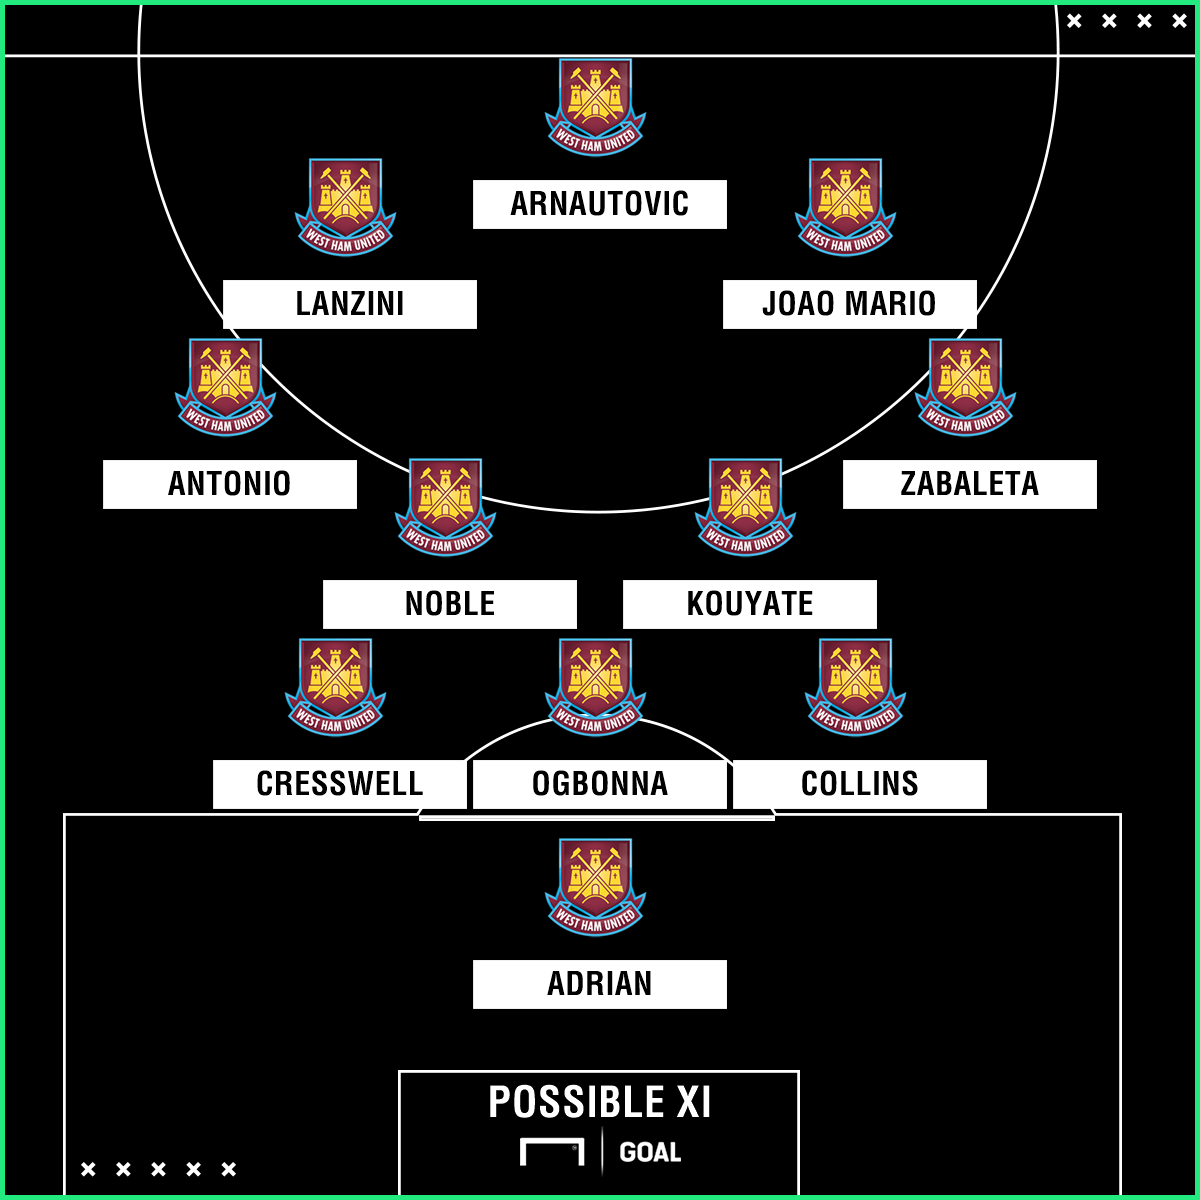 Tottenham Team News Injuries Suspensions And Line Up Vs: West Ham Team News: Injuries, Suspensions And Line-up Vs